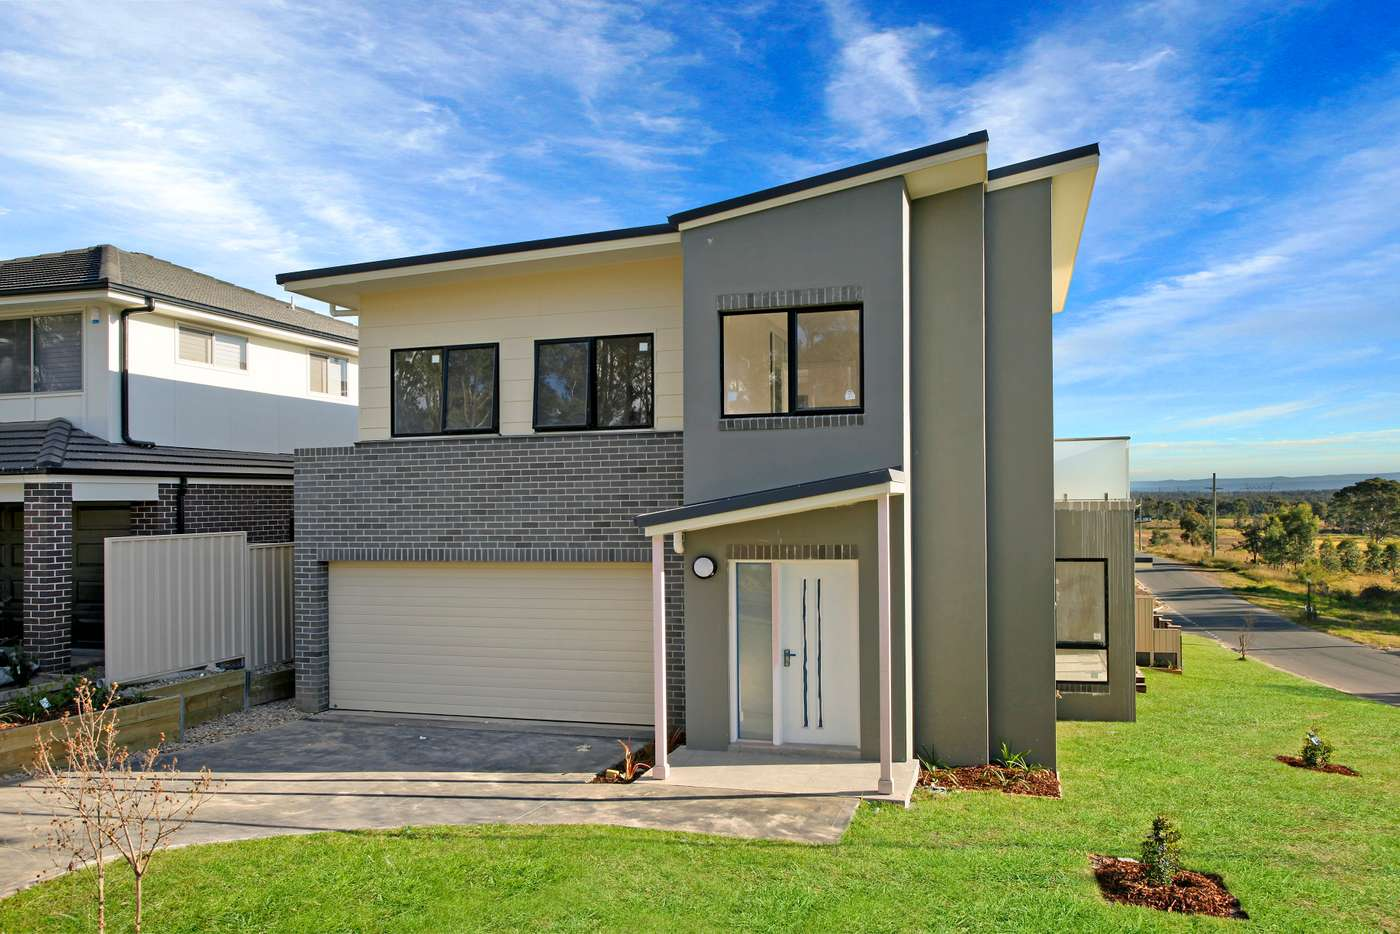 Main view of Homely house listing, 2 Vanlam Street, Schofields NSW 2762